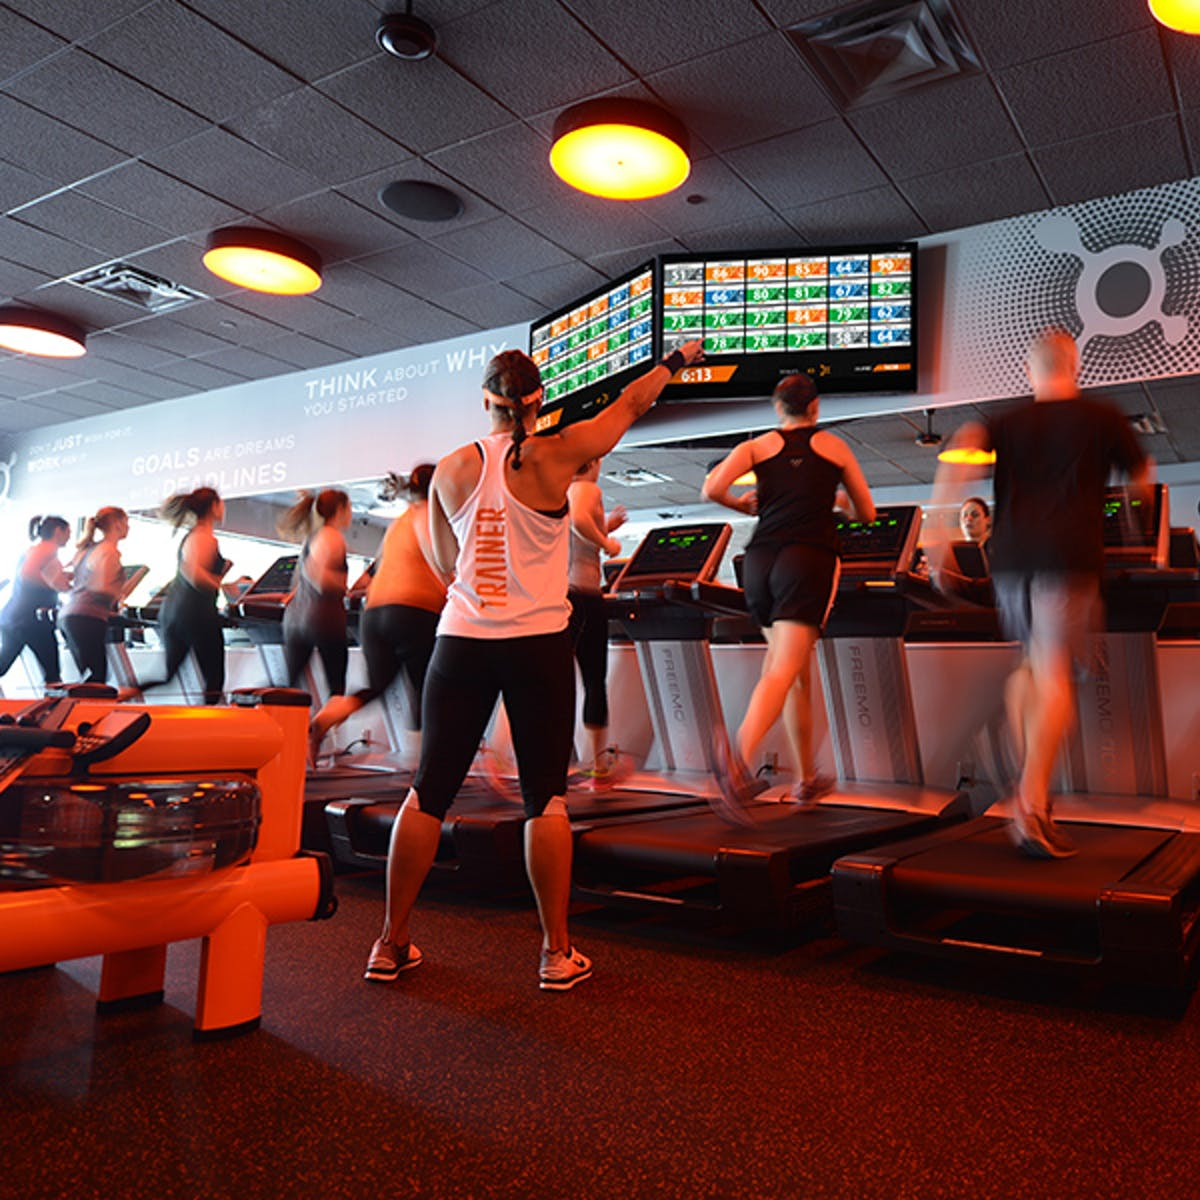 """Does Orange Theory Work? The Science of an """"Afterburn"""" Explains How It Can"""